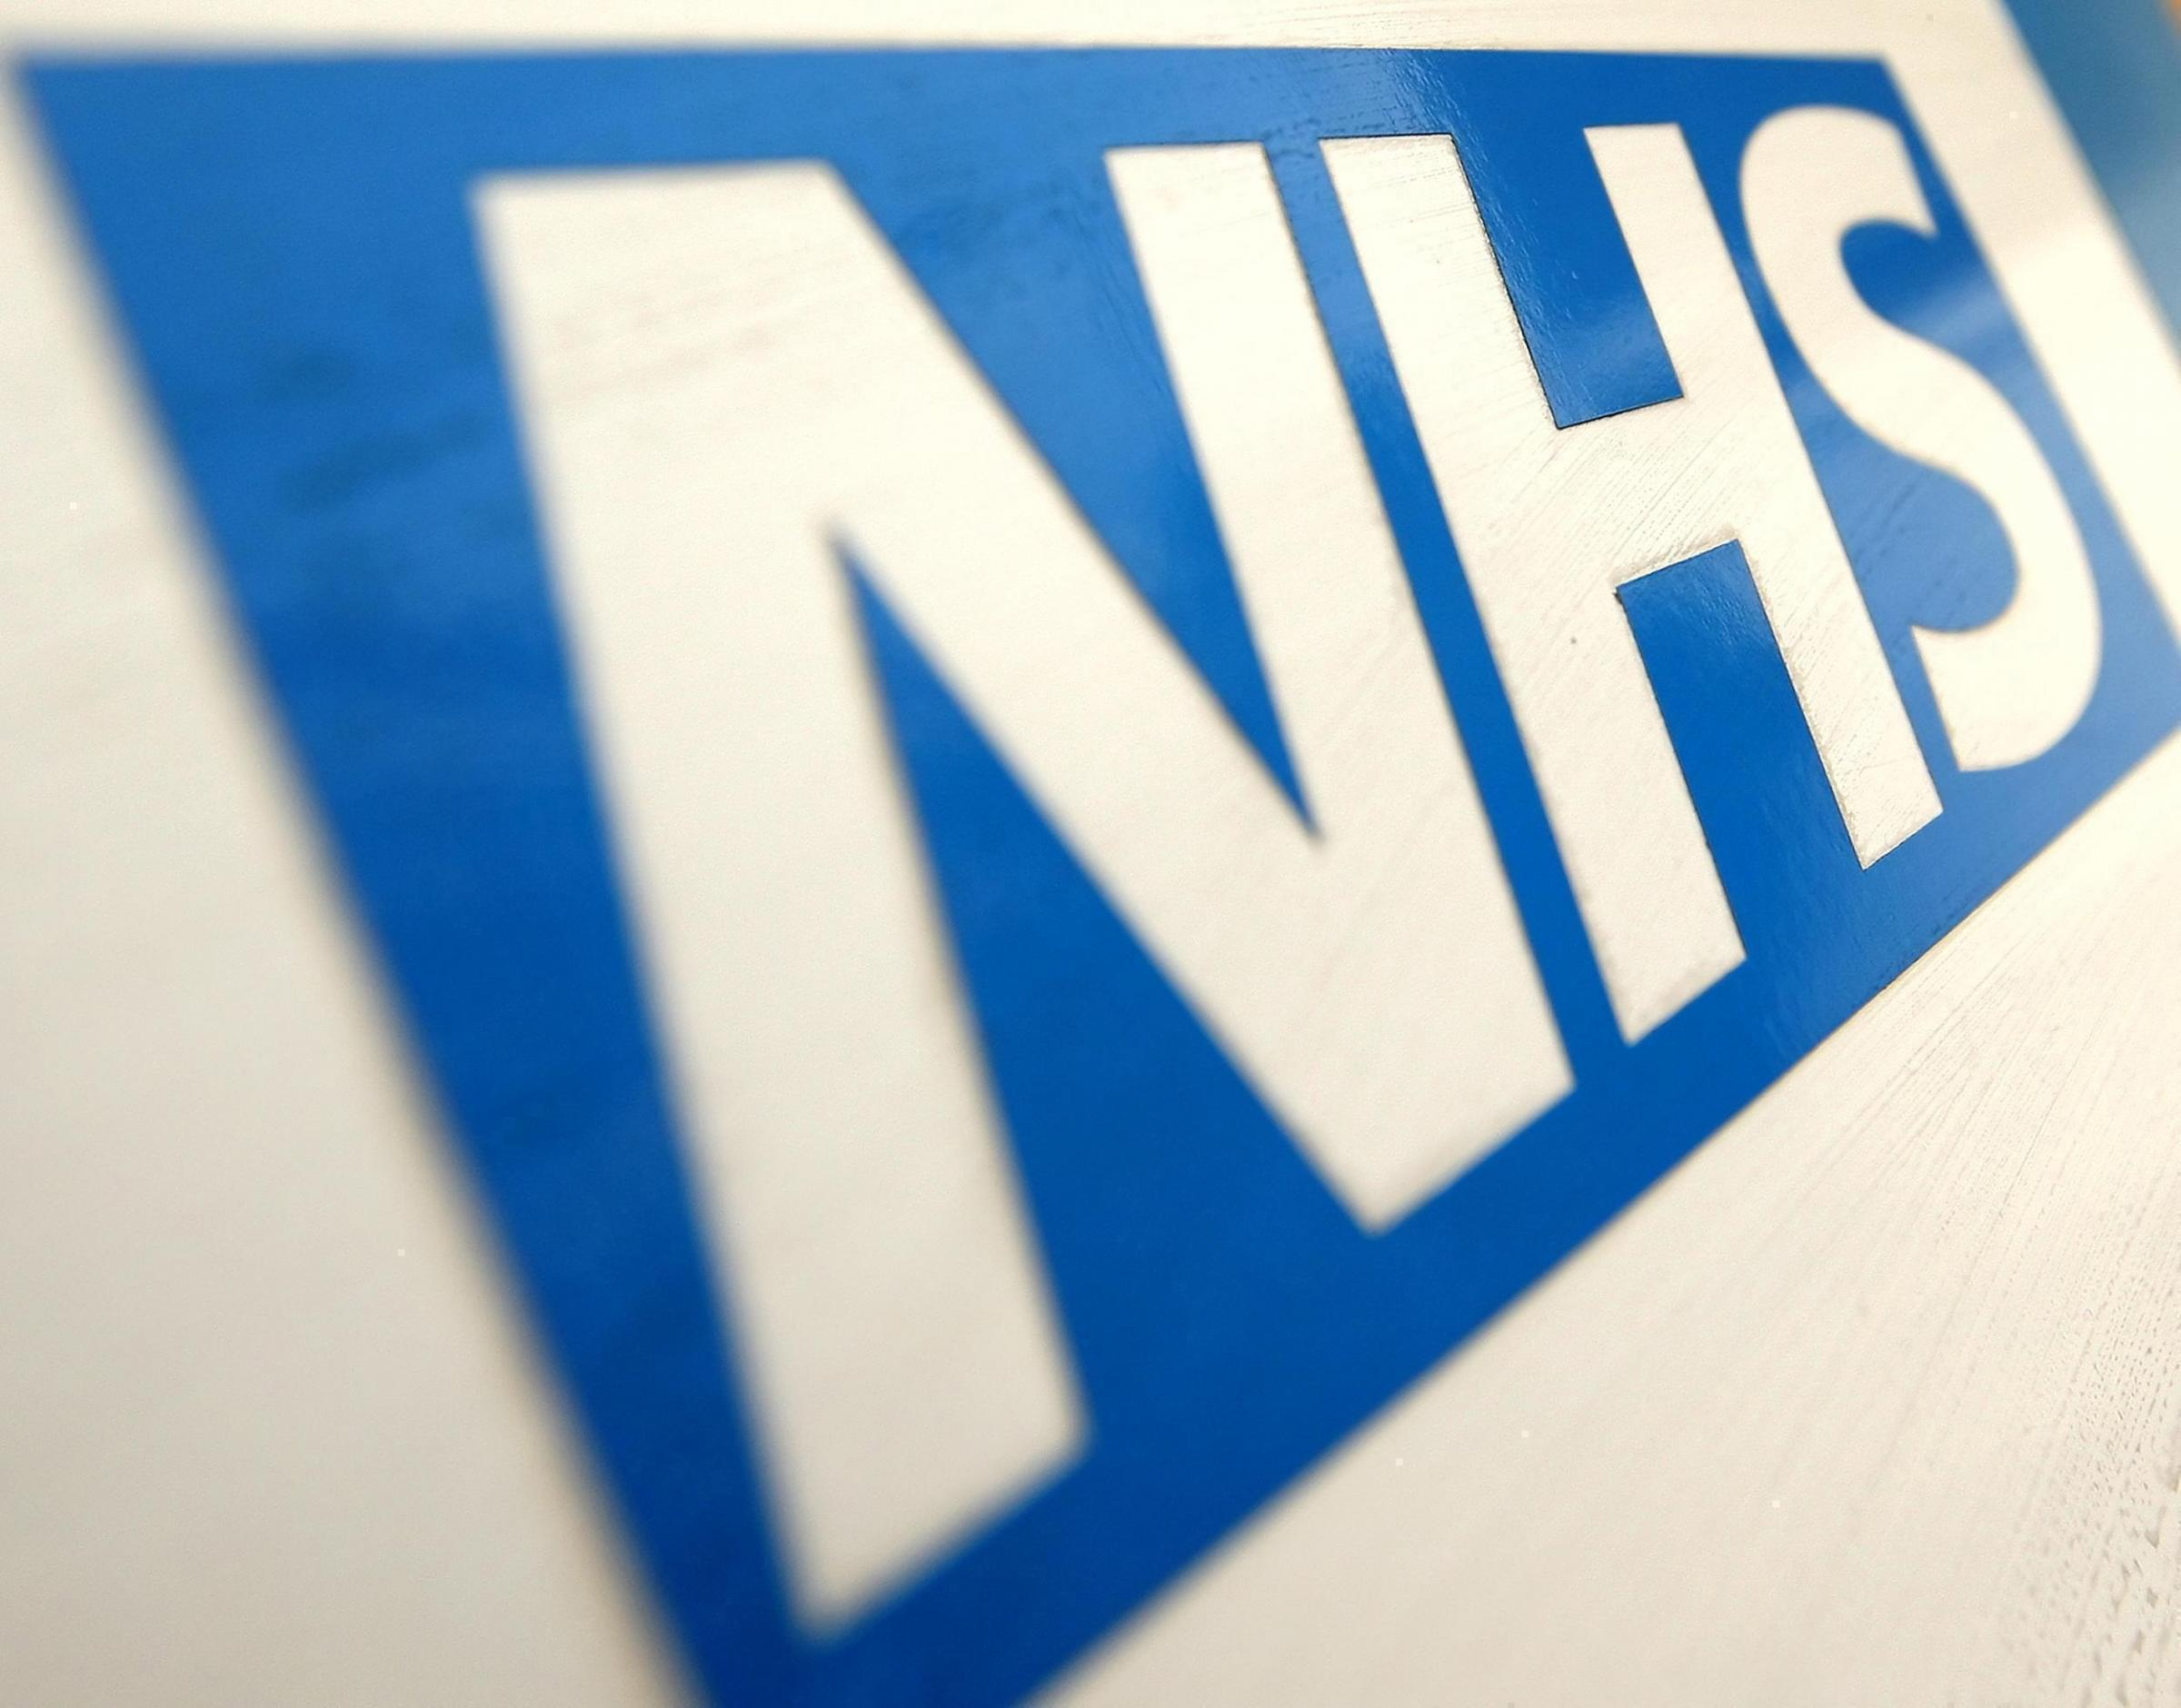 Taking a look over the controversial shake-up in the NHS